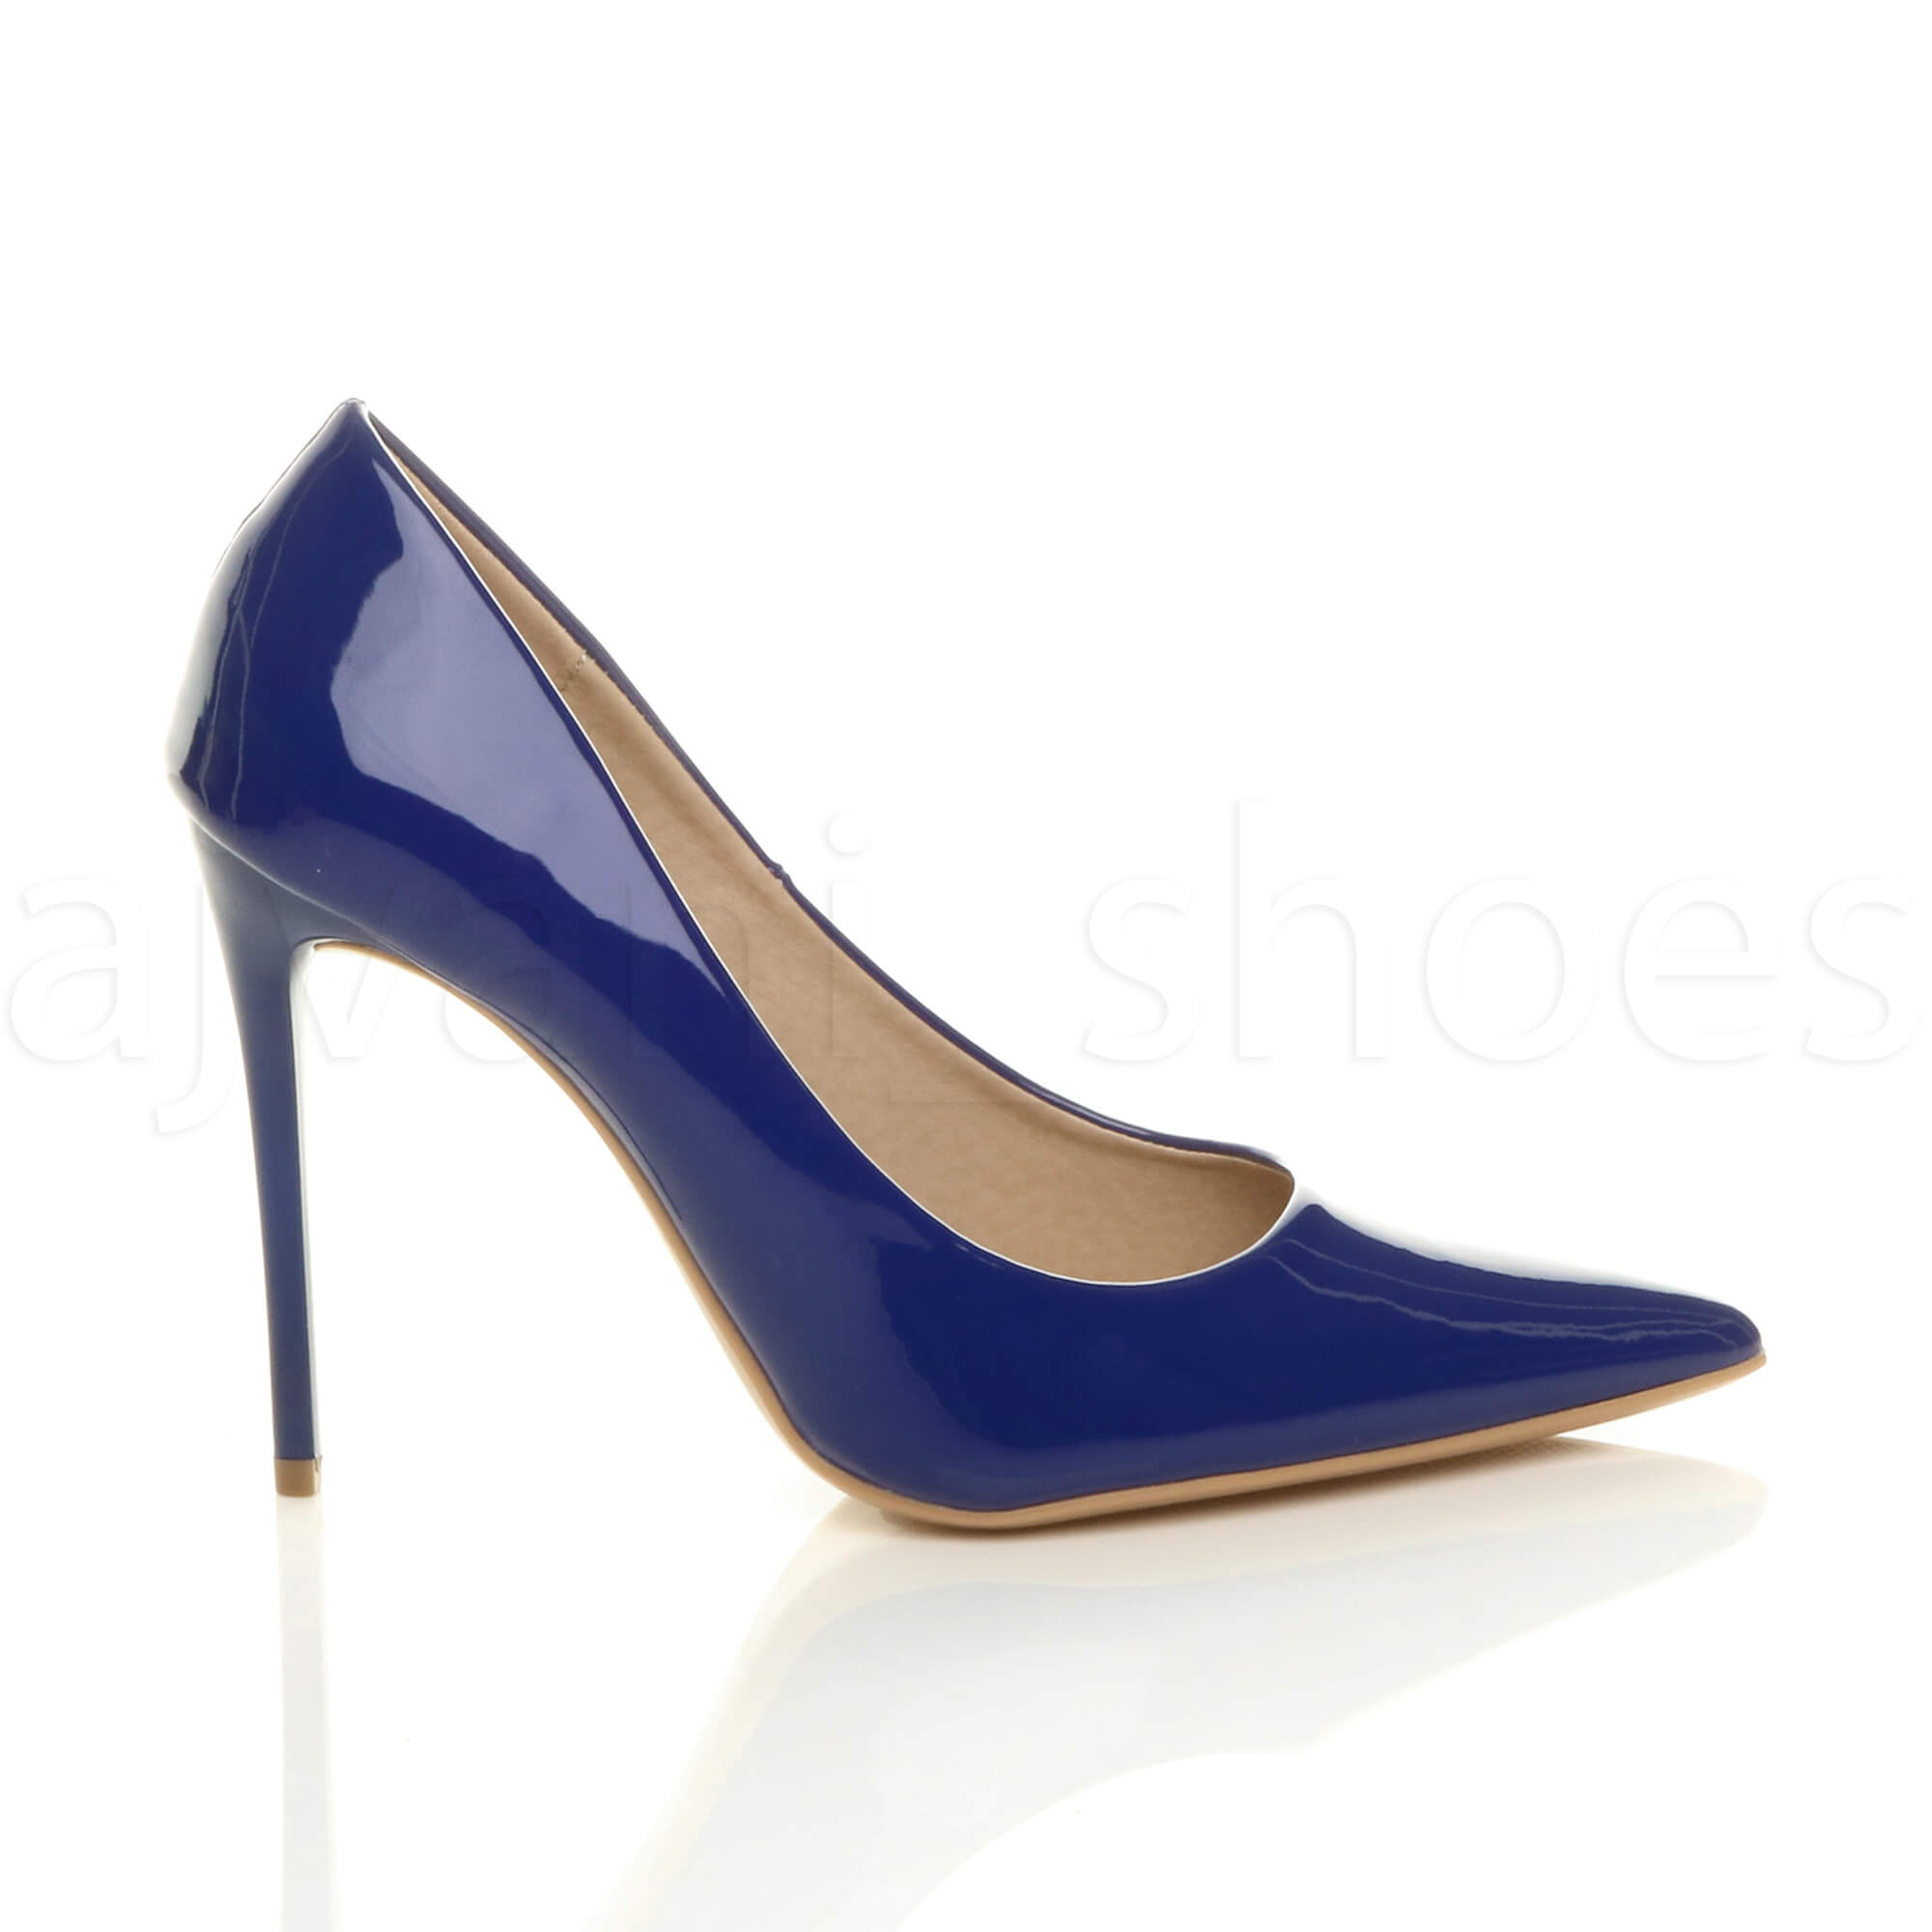 WOMENS-LADIES-HIGH-HEEL-POINTED-CONTRAST-COURT-SMART-PARTY-WORK-SHOES-PUMPS-SIZE thumbnail 51